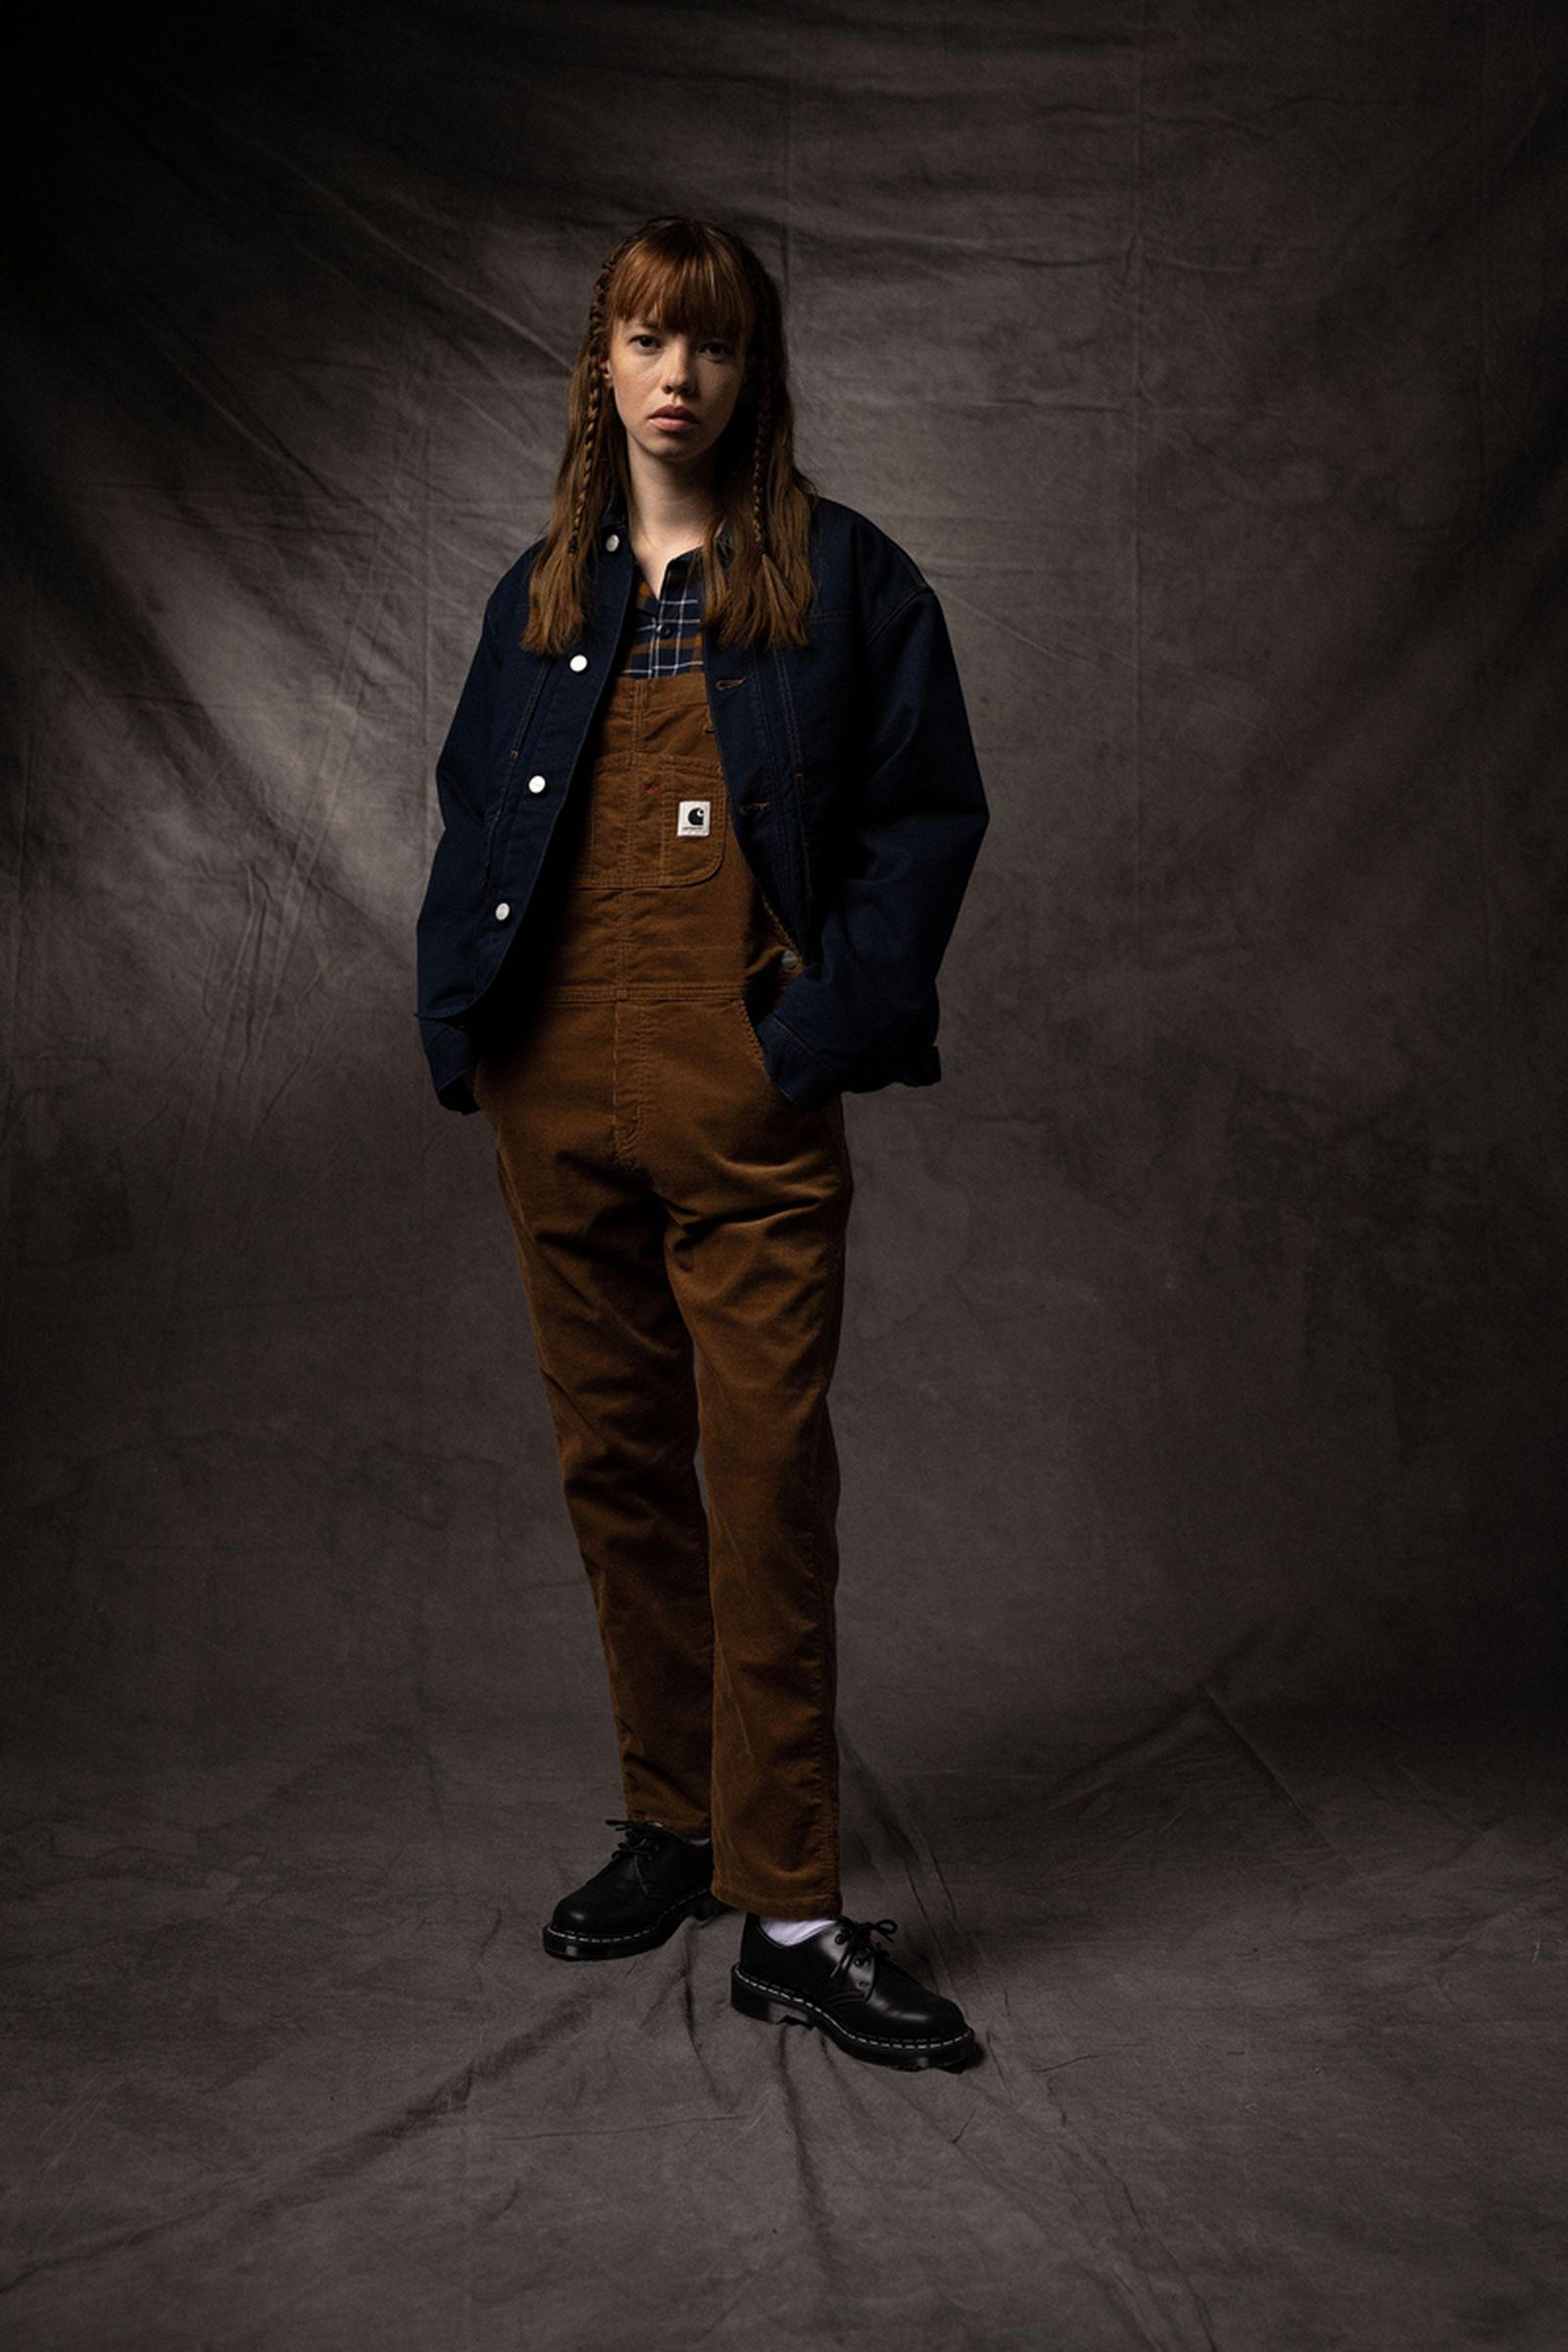 carhartt-wip-fall-winter-2021-collection- (34)